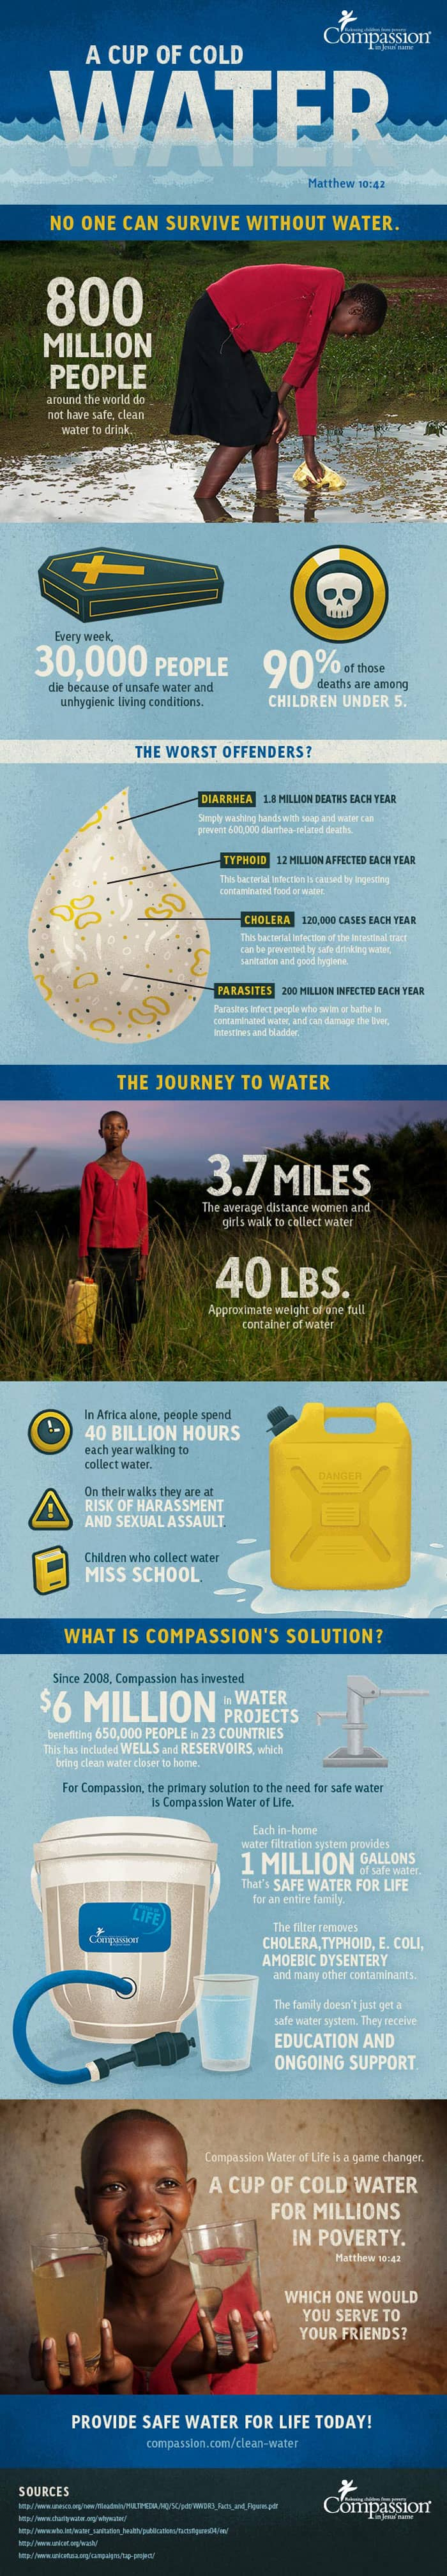 cup-of-cold-water-infographic-700